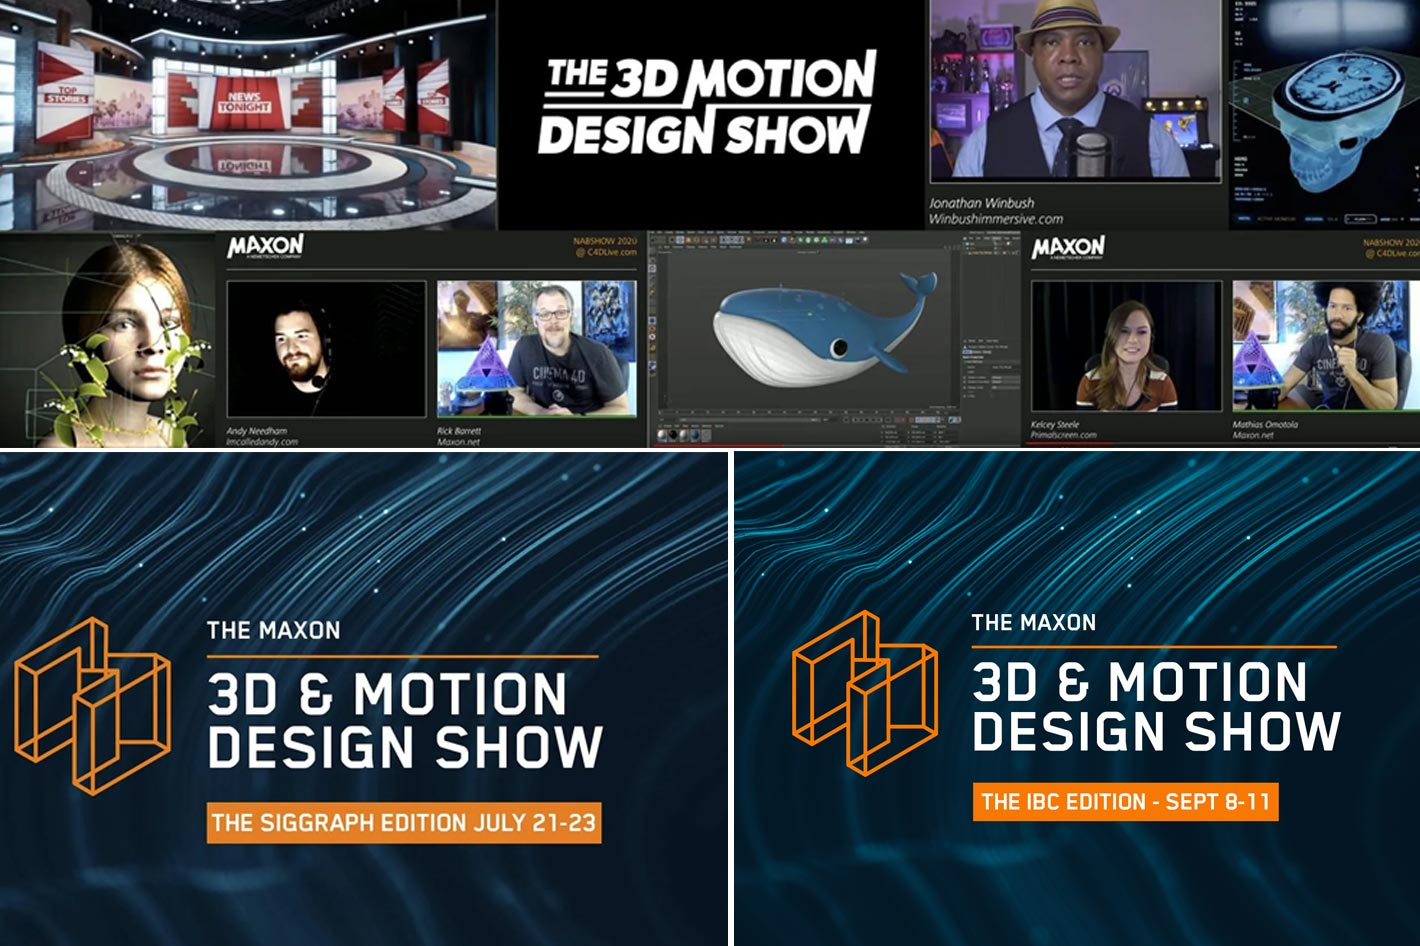 Maxon 3D and Motion Design Show for IBC 2020